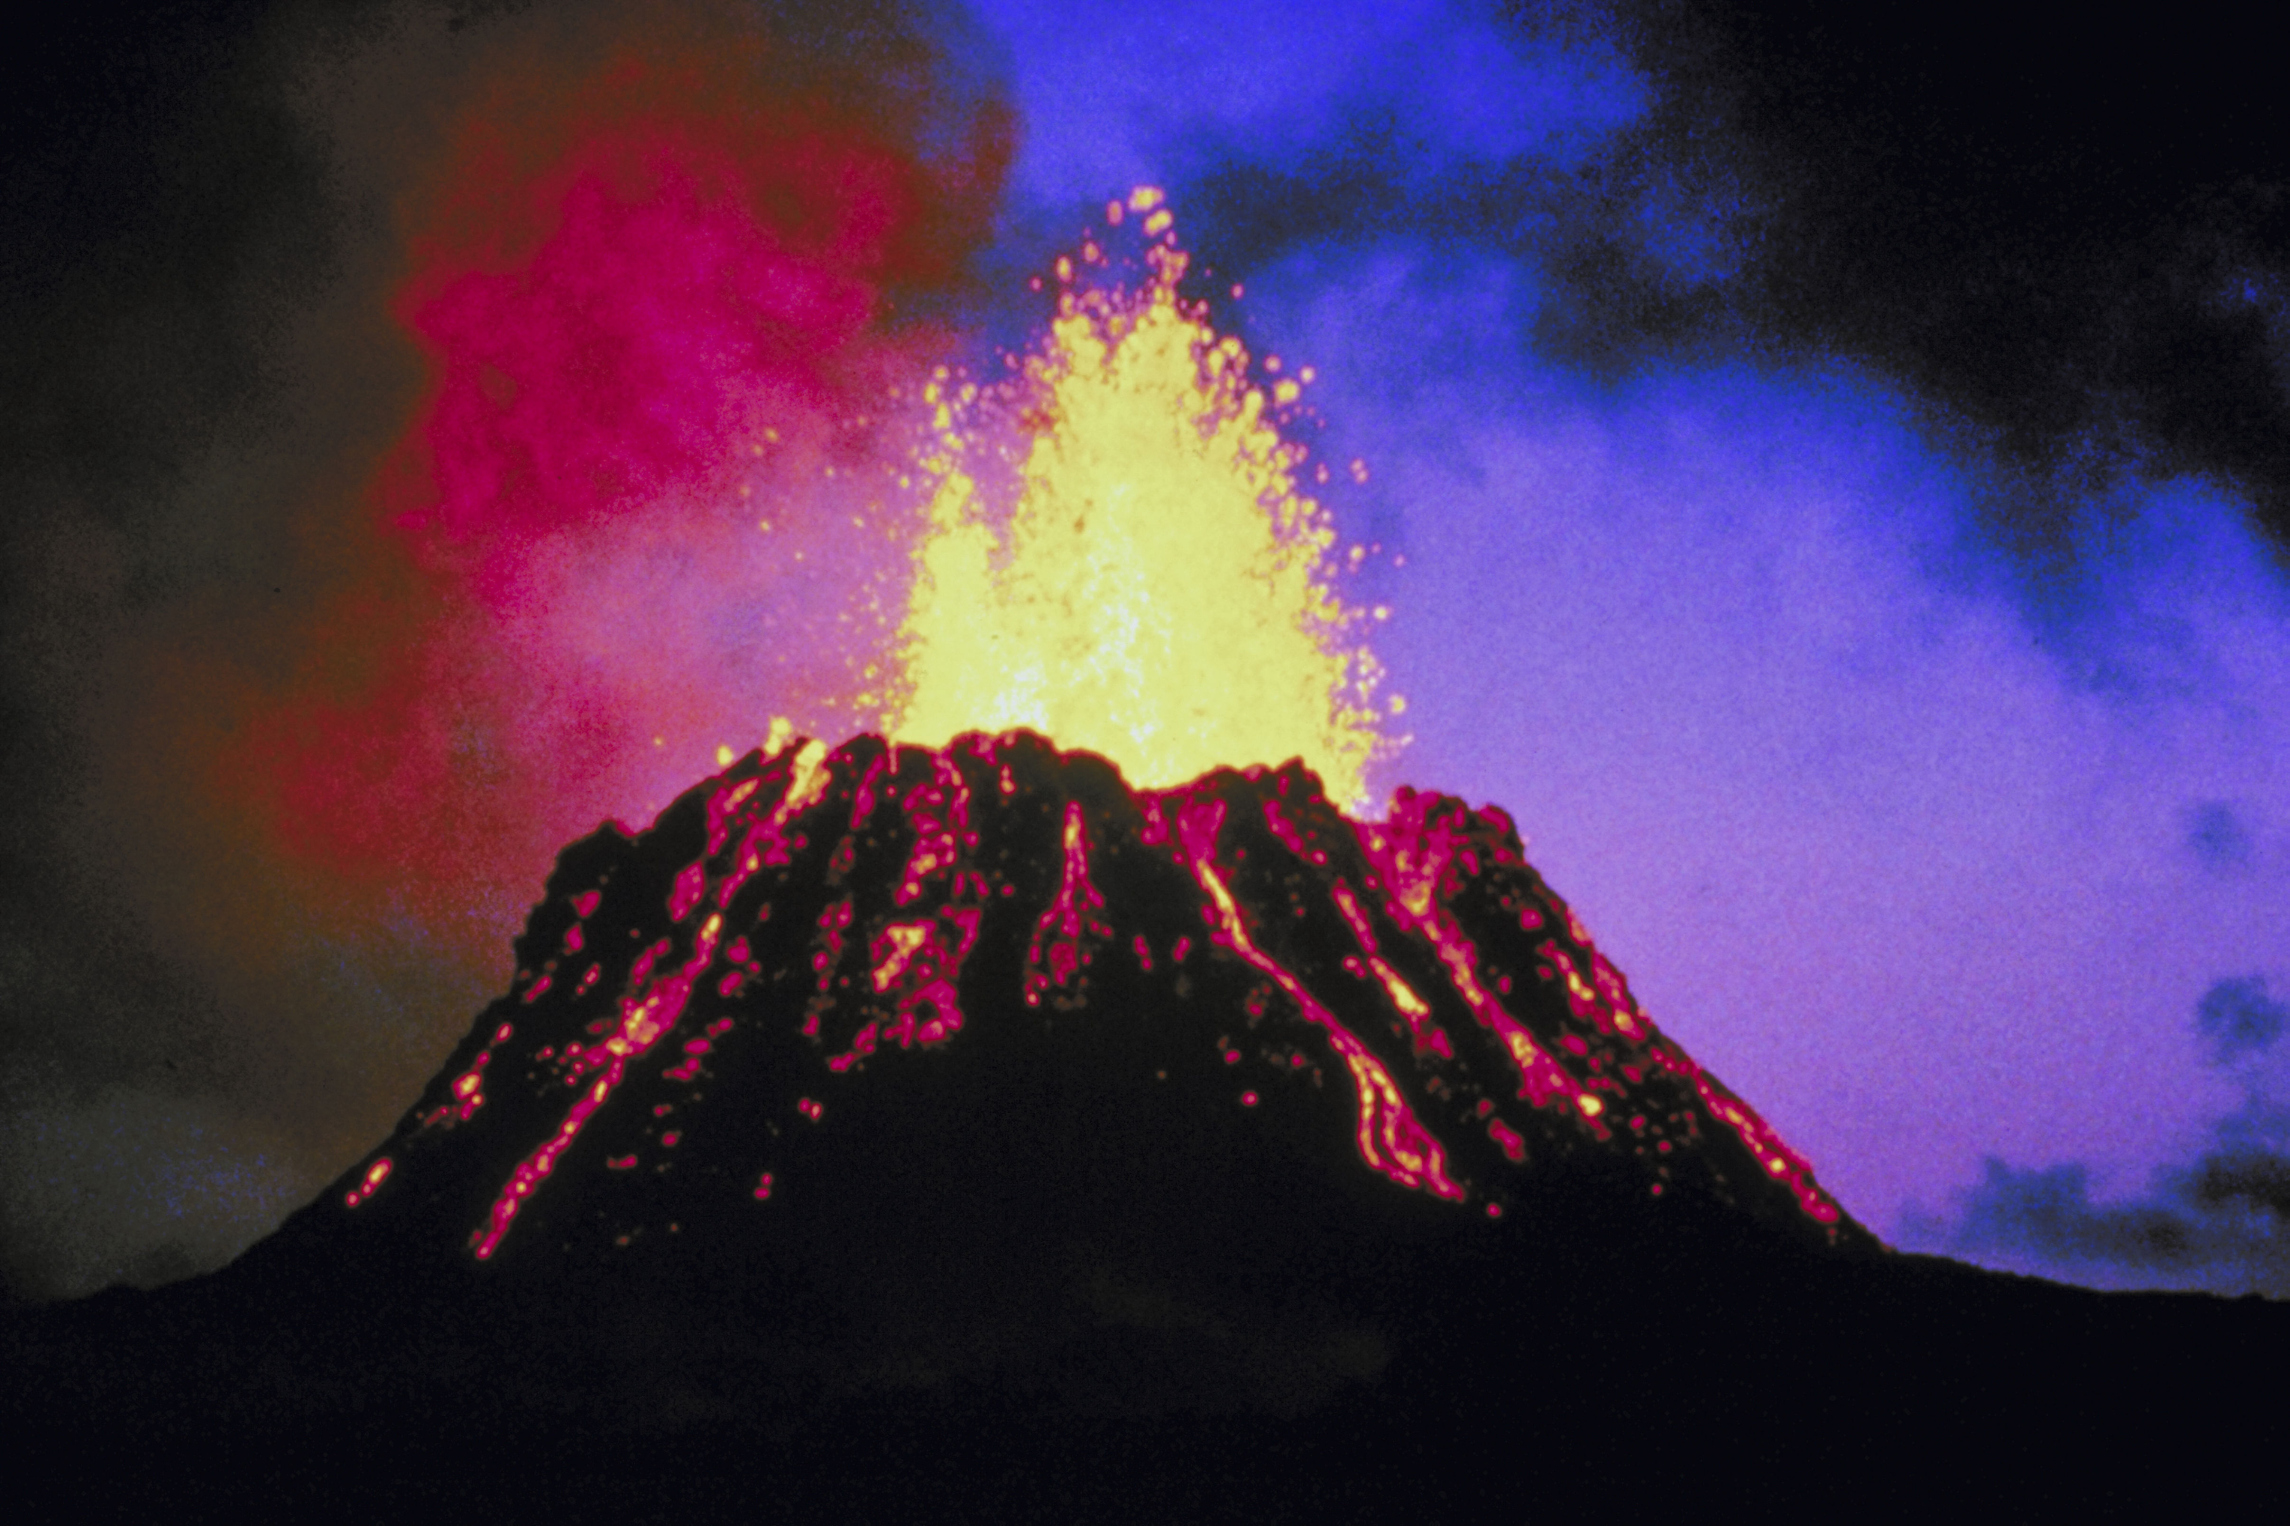 How to make a volcano erupt for a science project